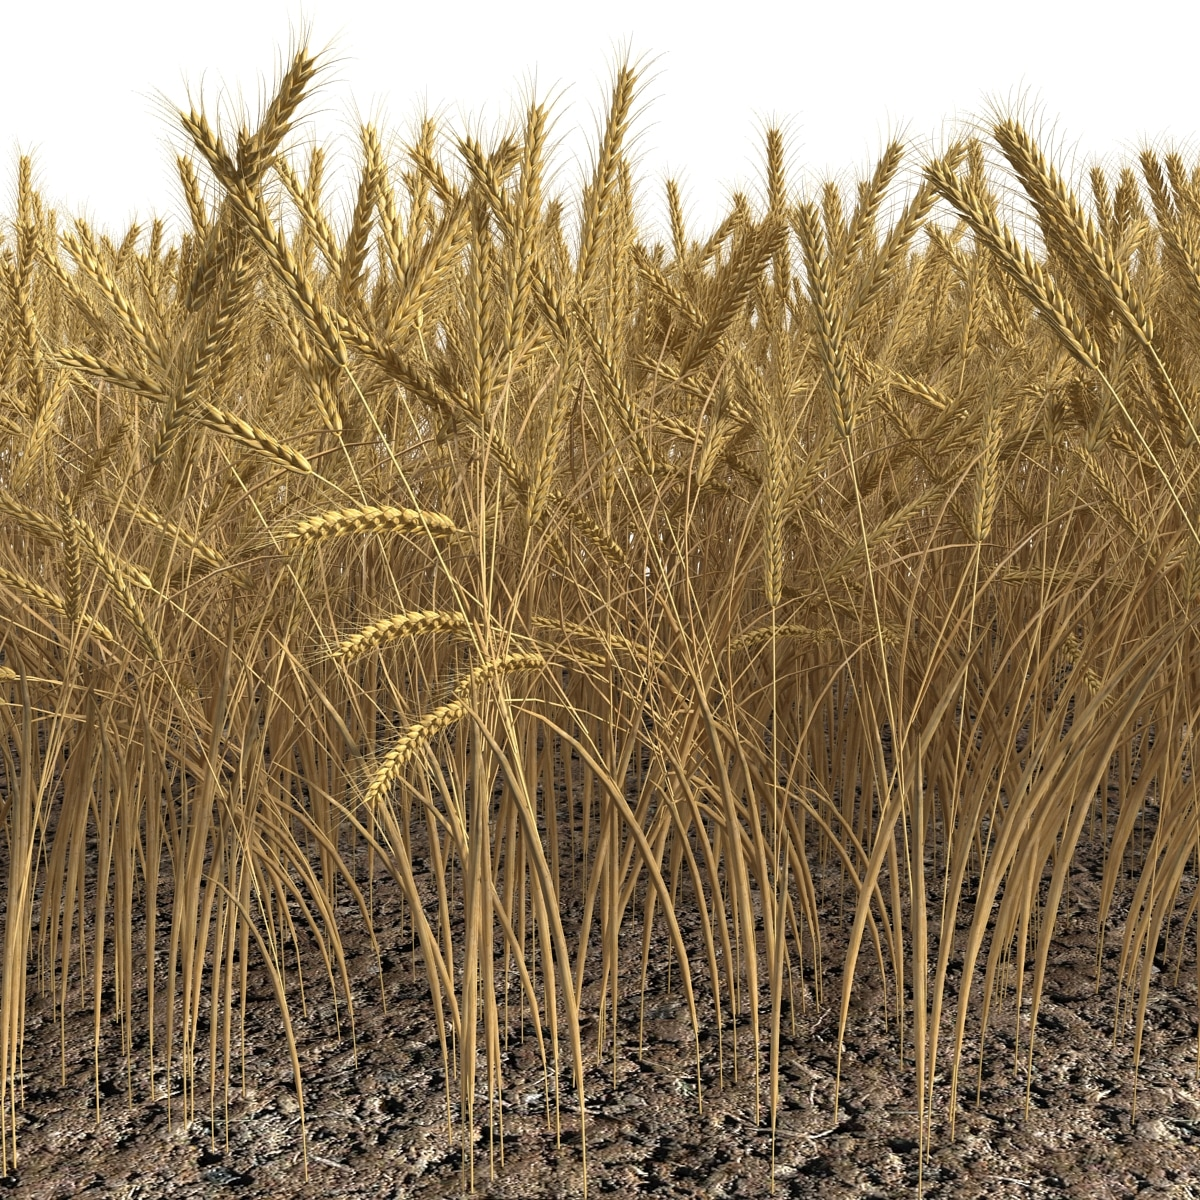 Wheat Field_8.jpg